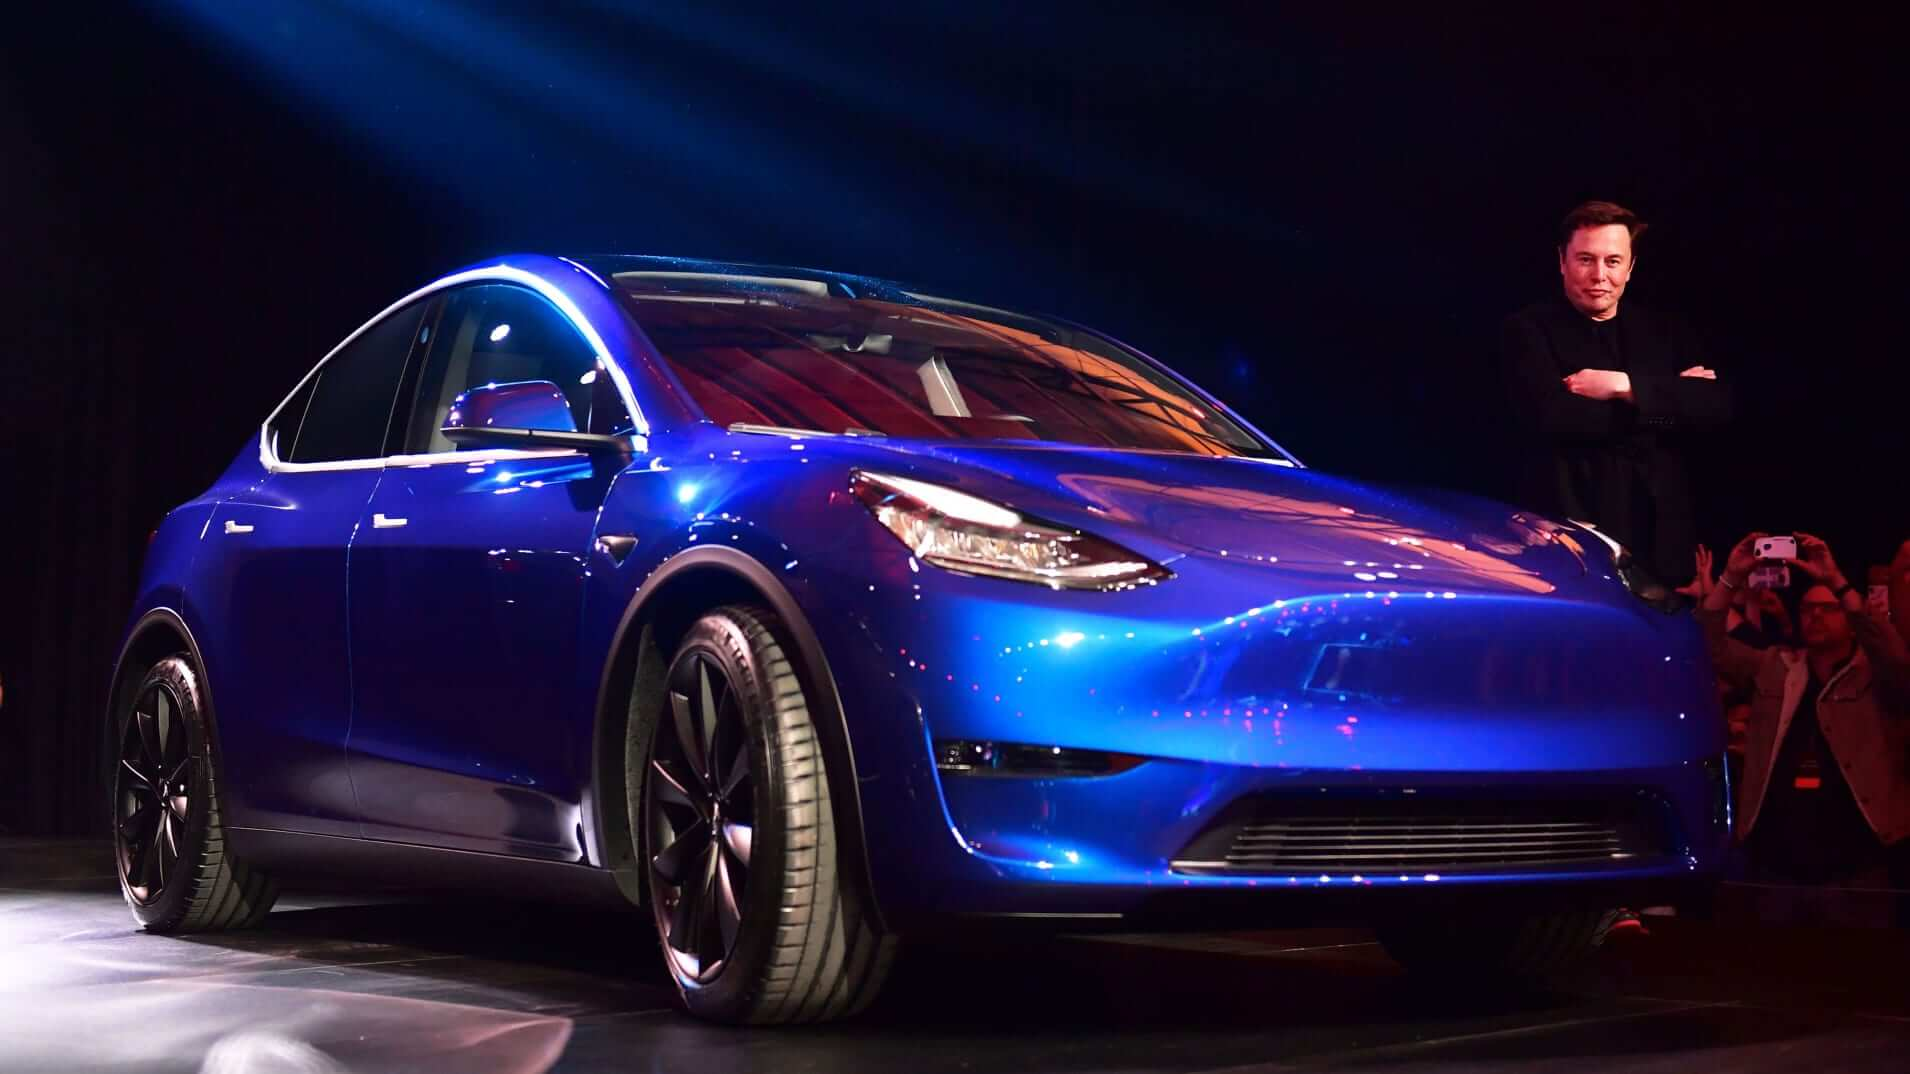 Tesla plans to start production of the Model Y in 2020